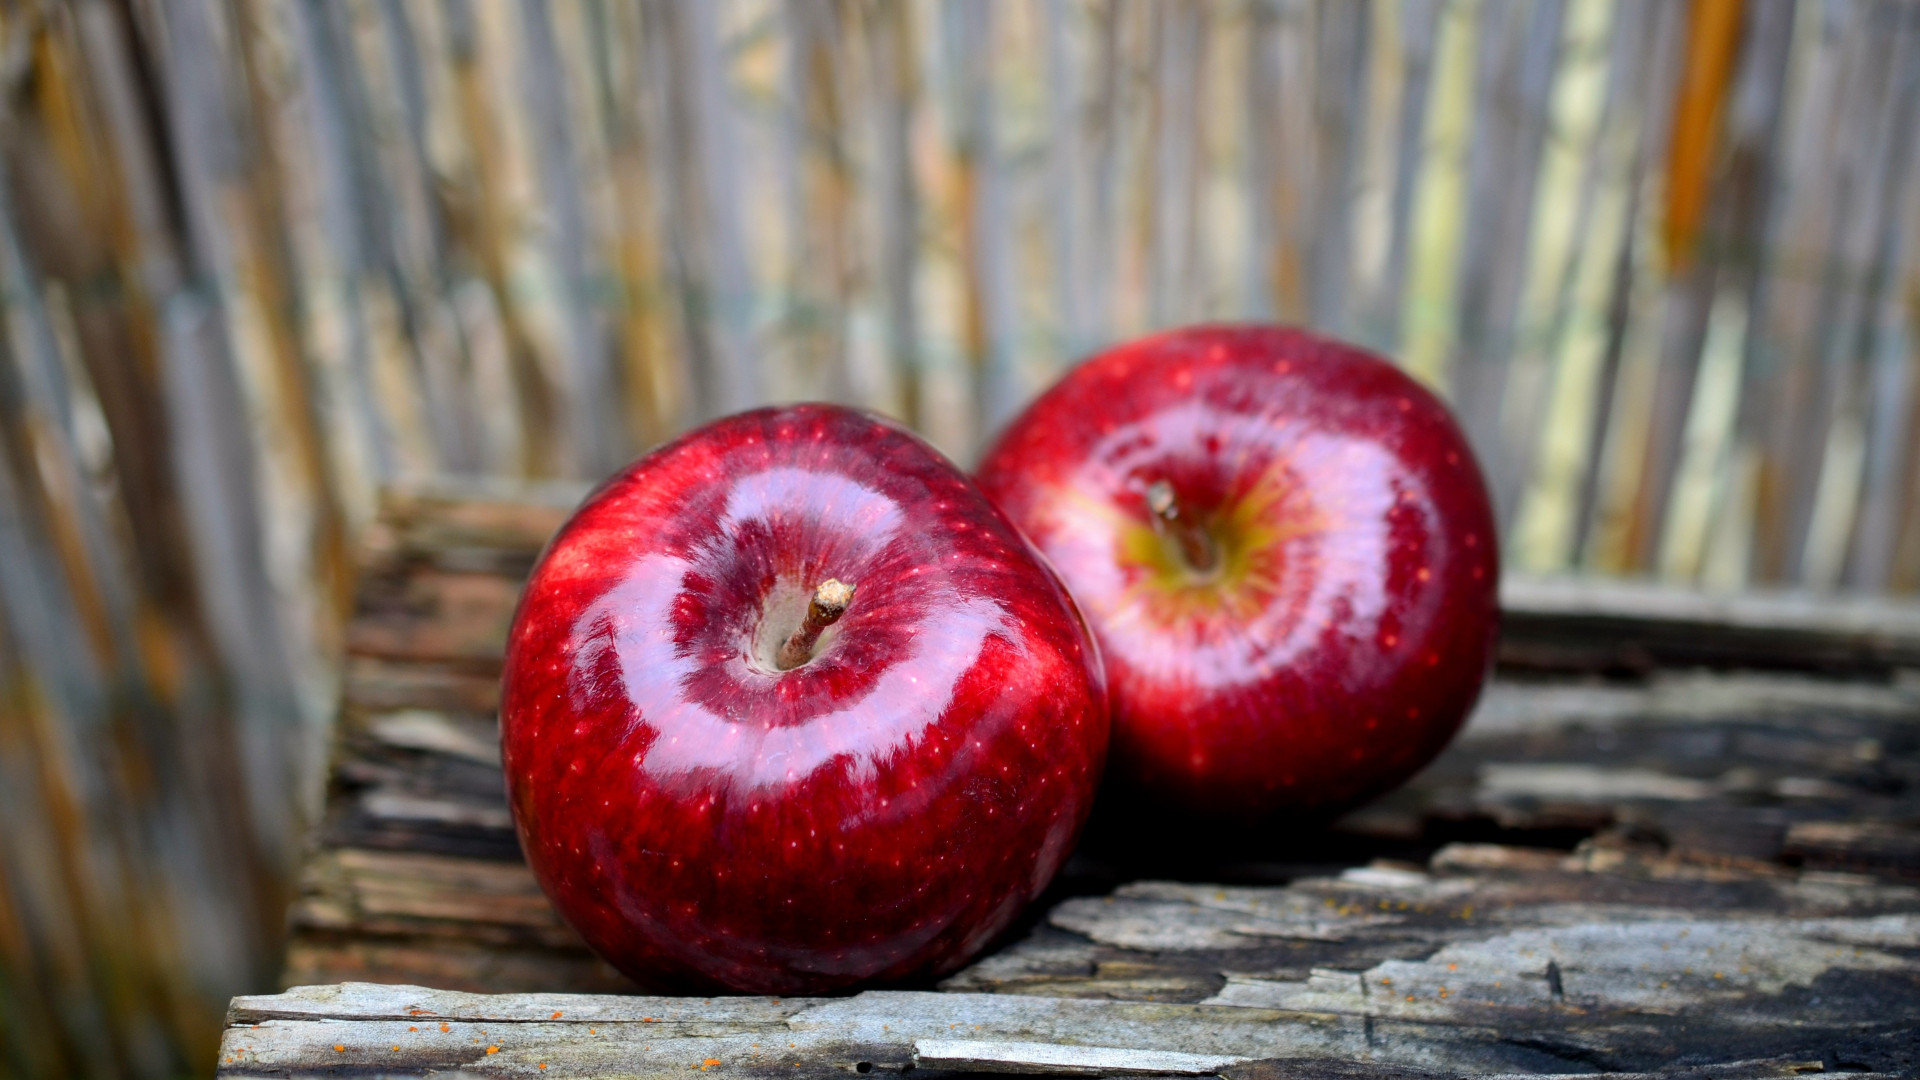 Delicious red apples wallpaper 1920x1080